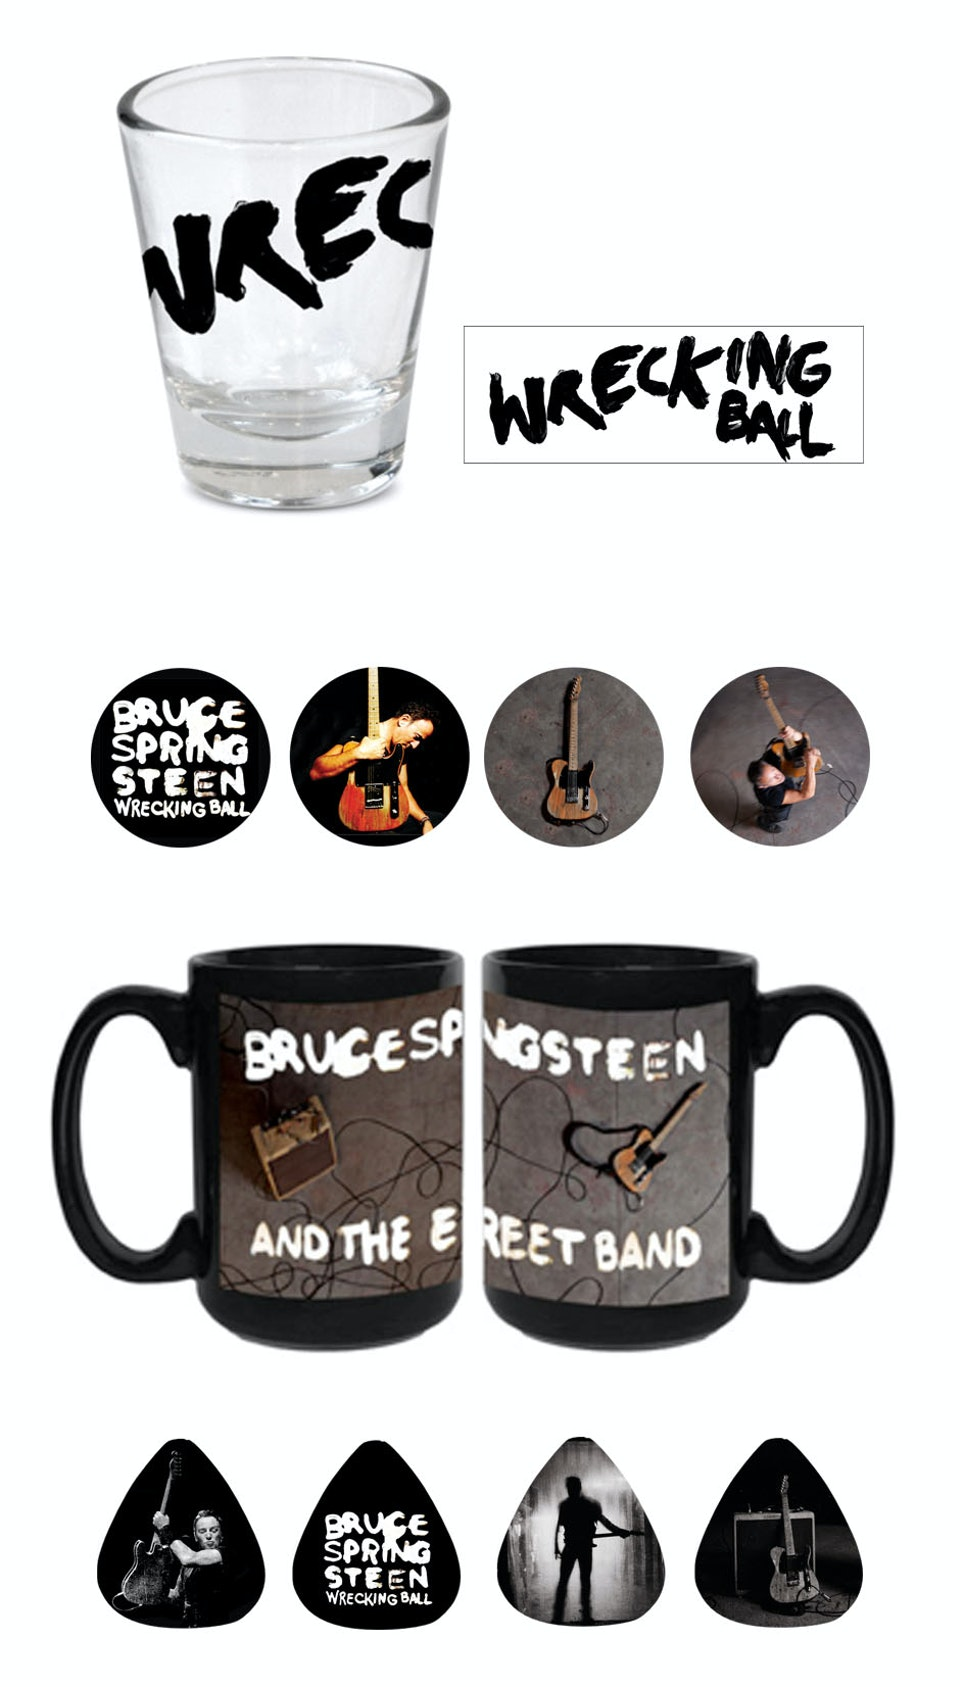 Wrecking Ball Tour Merch - Shot glass, pin, mug and guitar picks